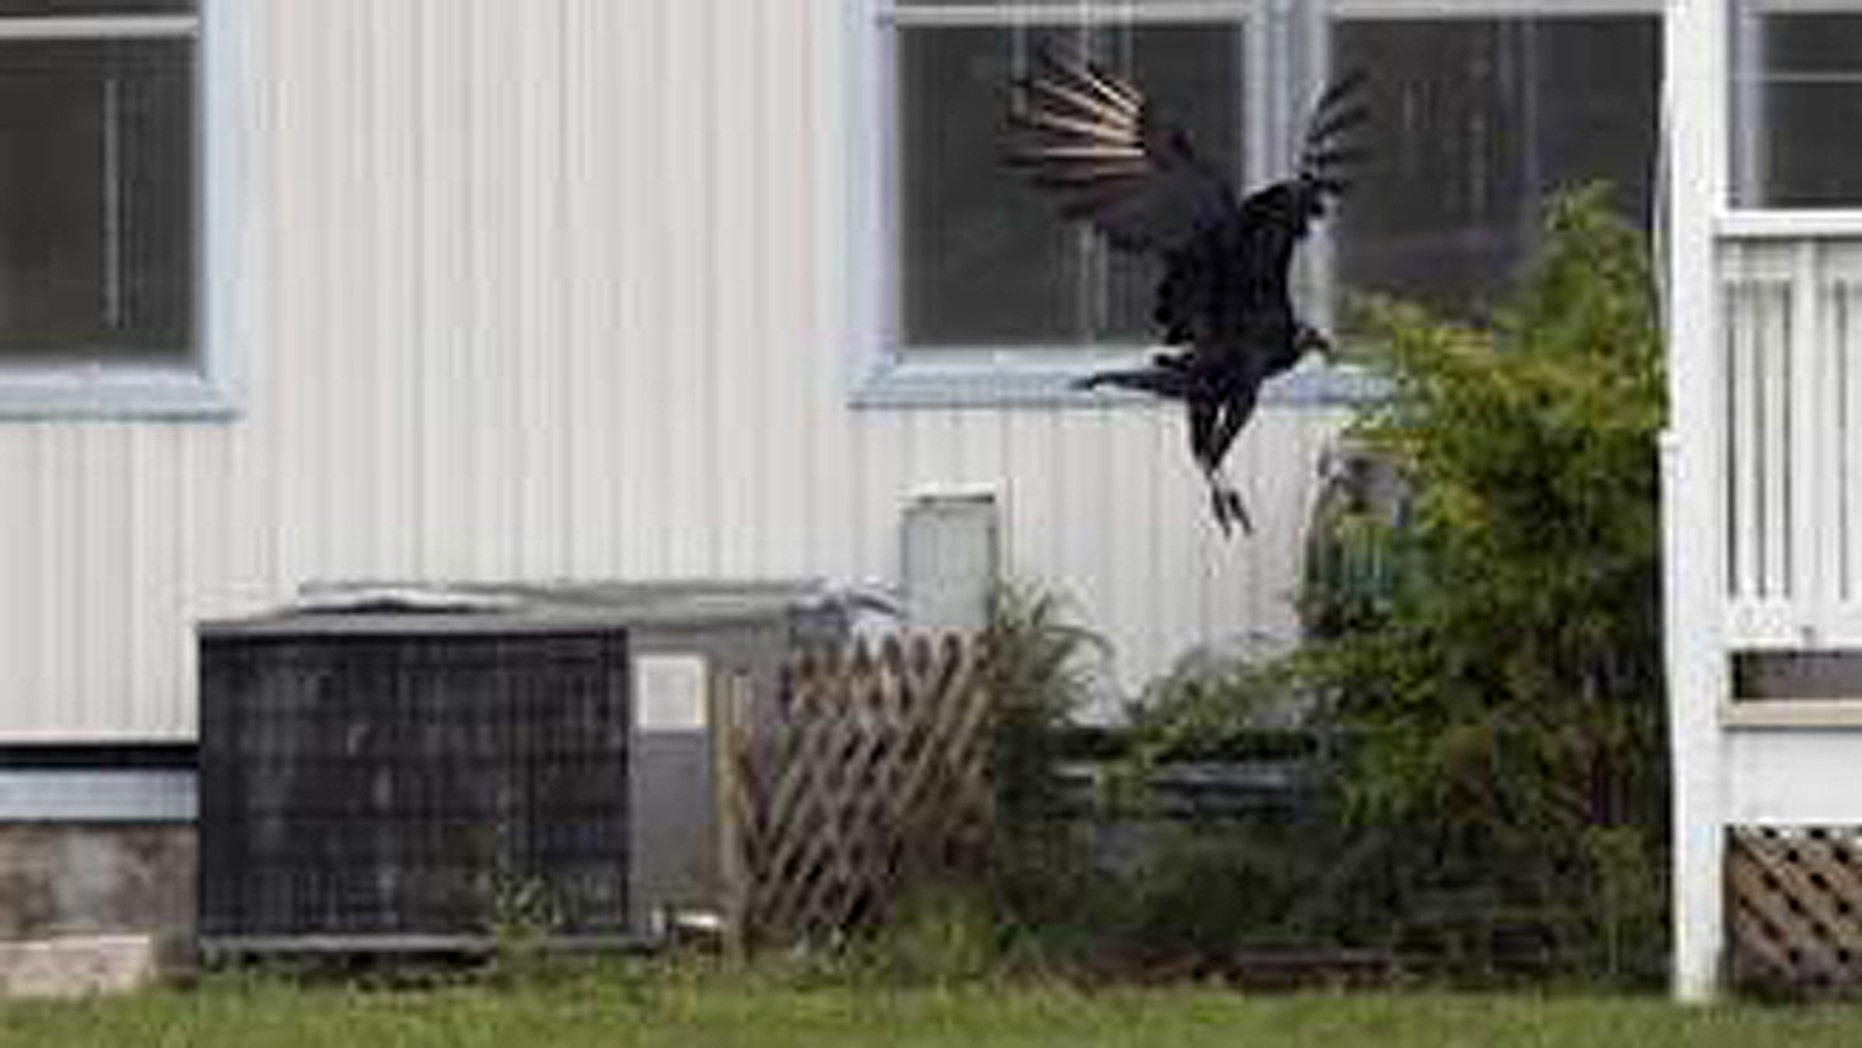 Dave and Judy Harting have struggled to combat the flock of vultures that have swarmed their Florida home.